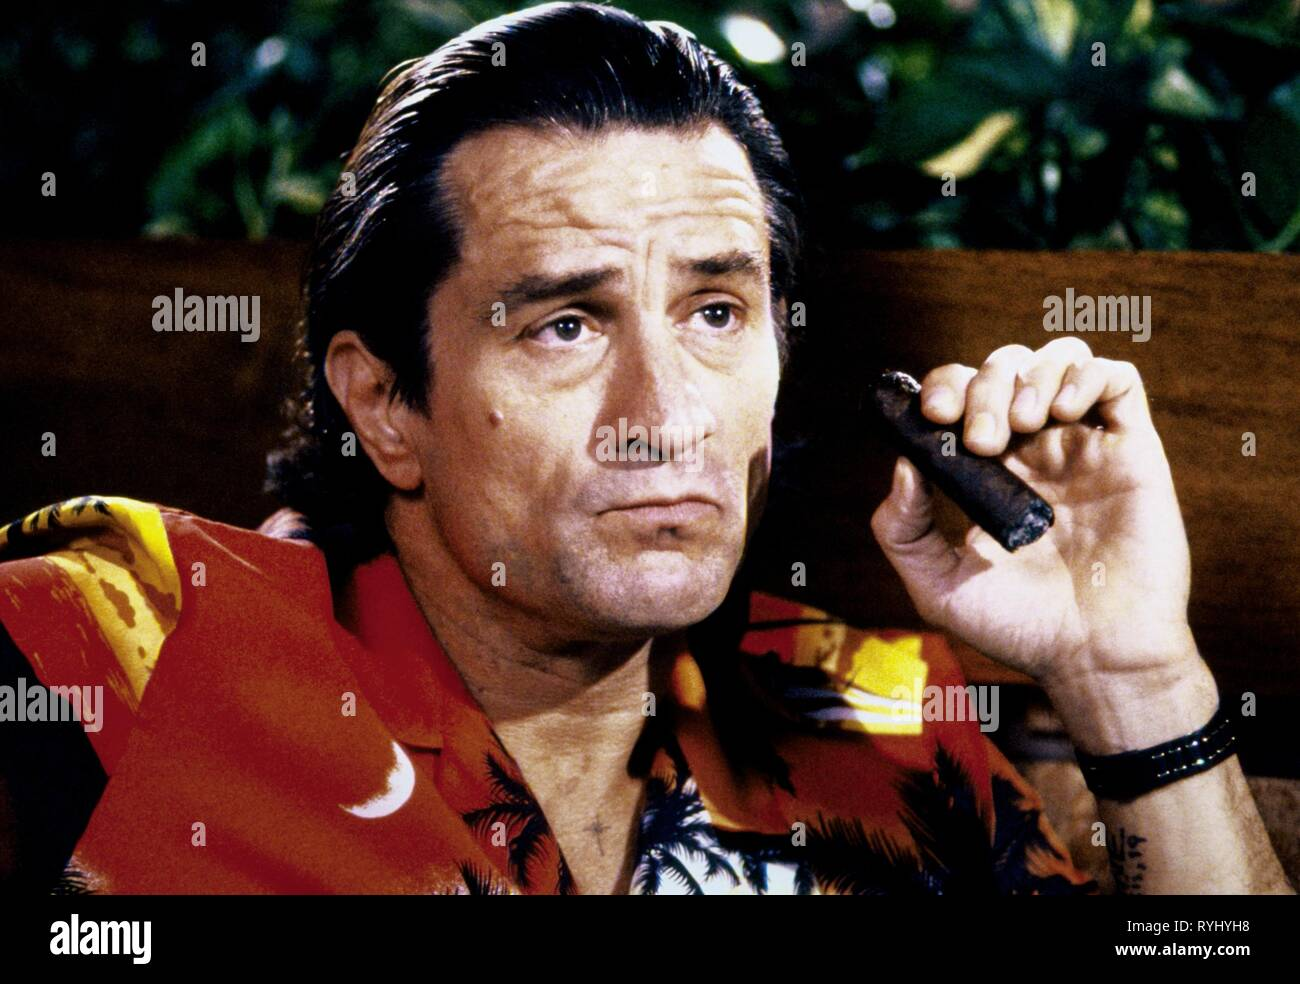 ROBERT DE NIRO, CAPE FEAR, 1991 Stock Photo